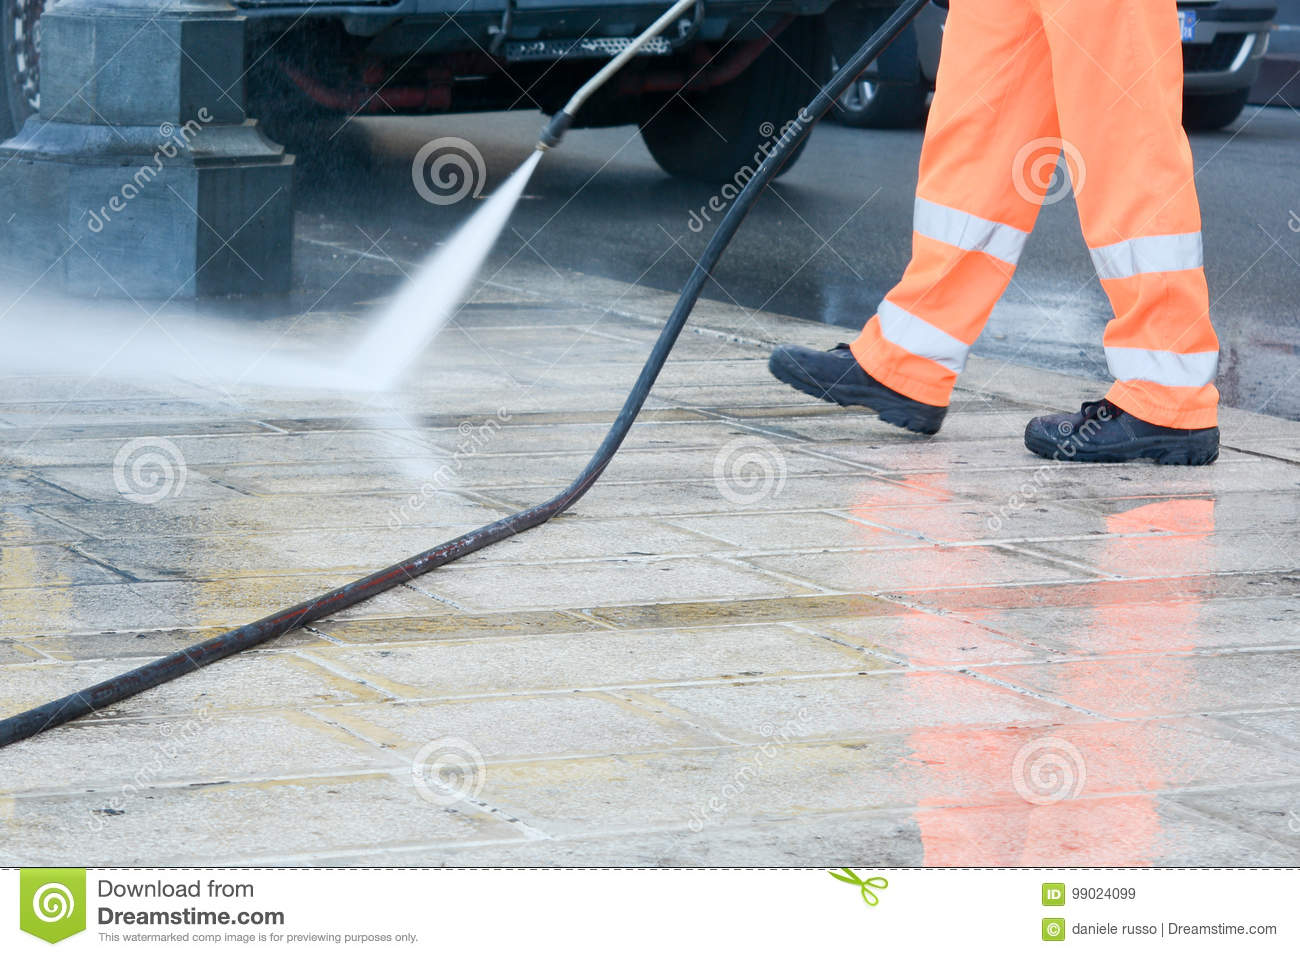 a worker with a pressure washer